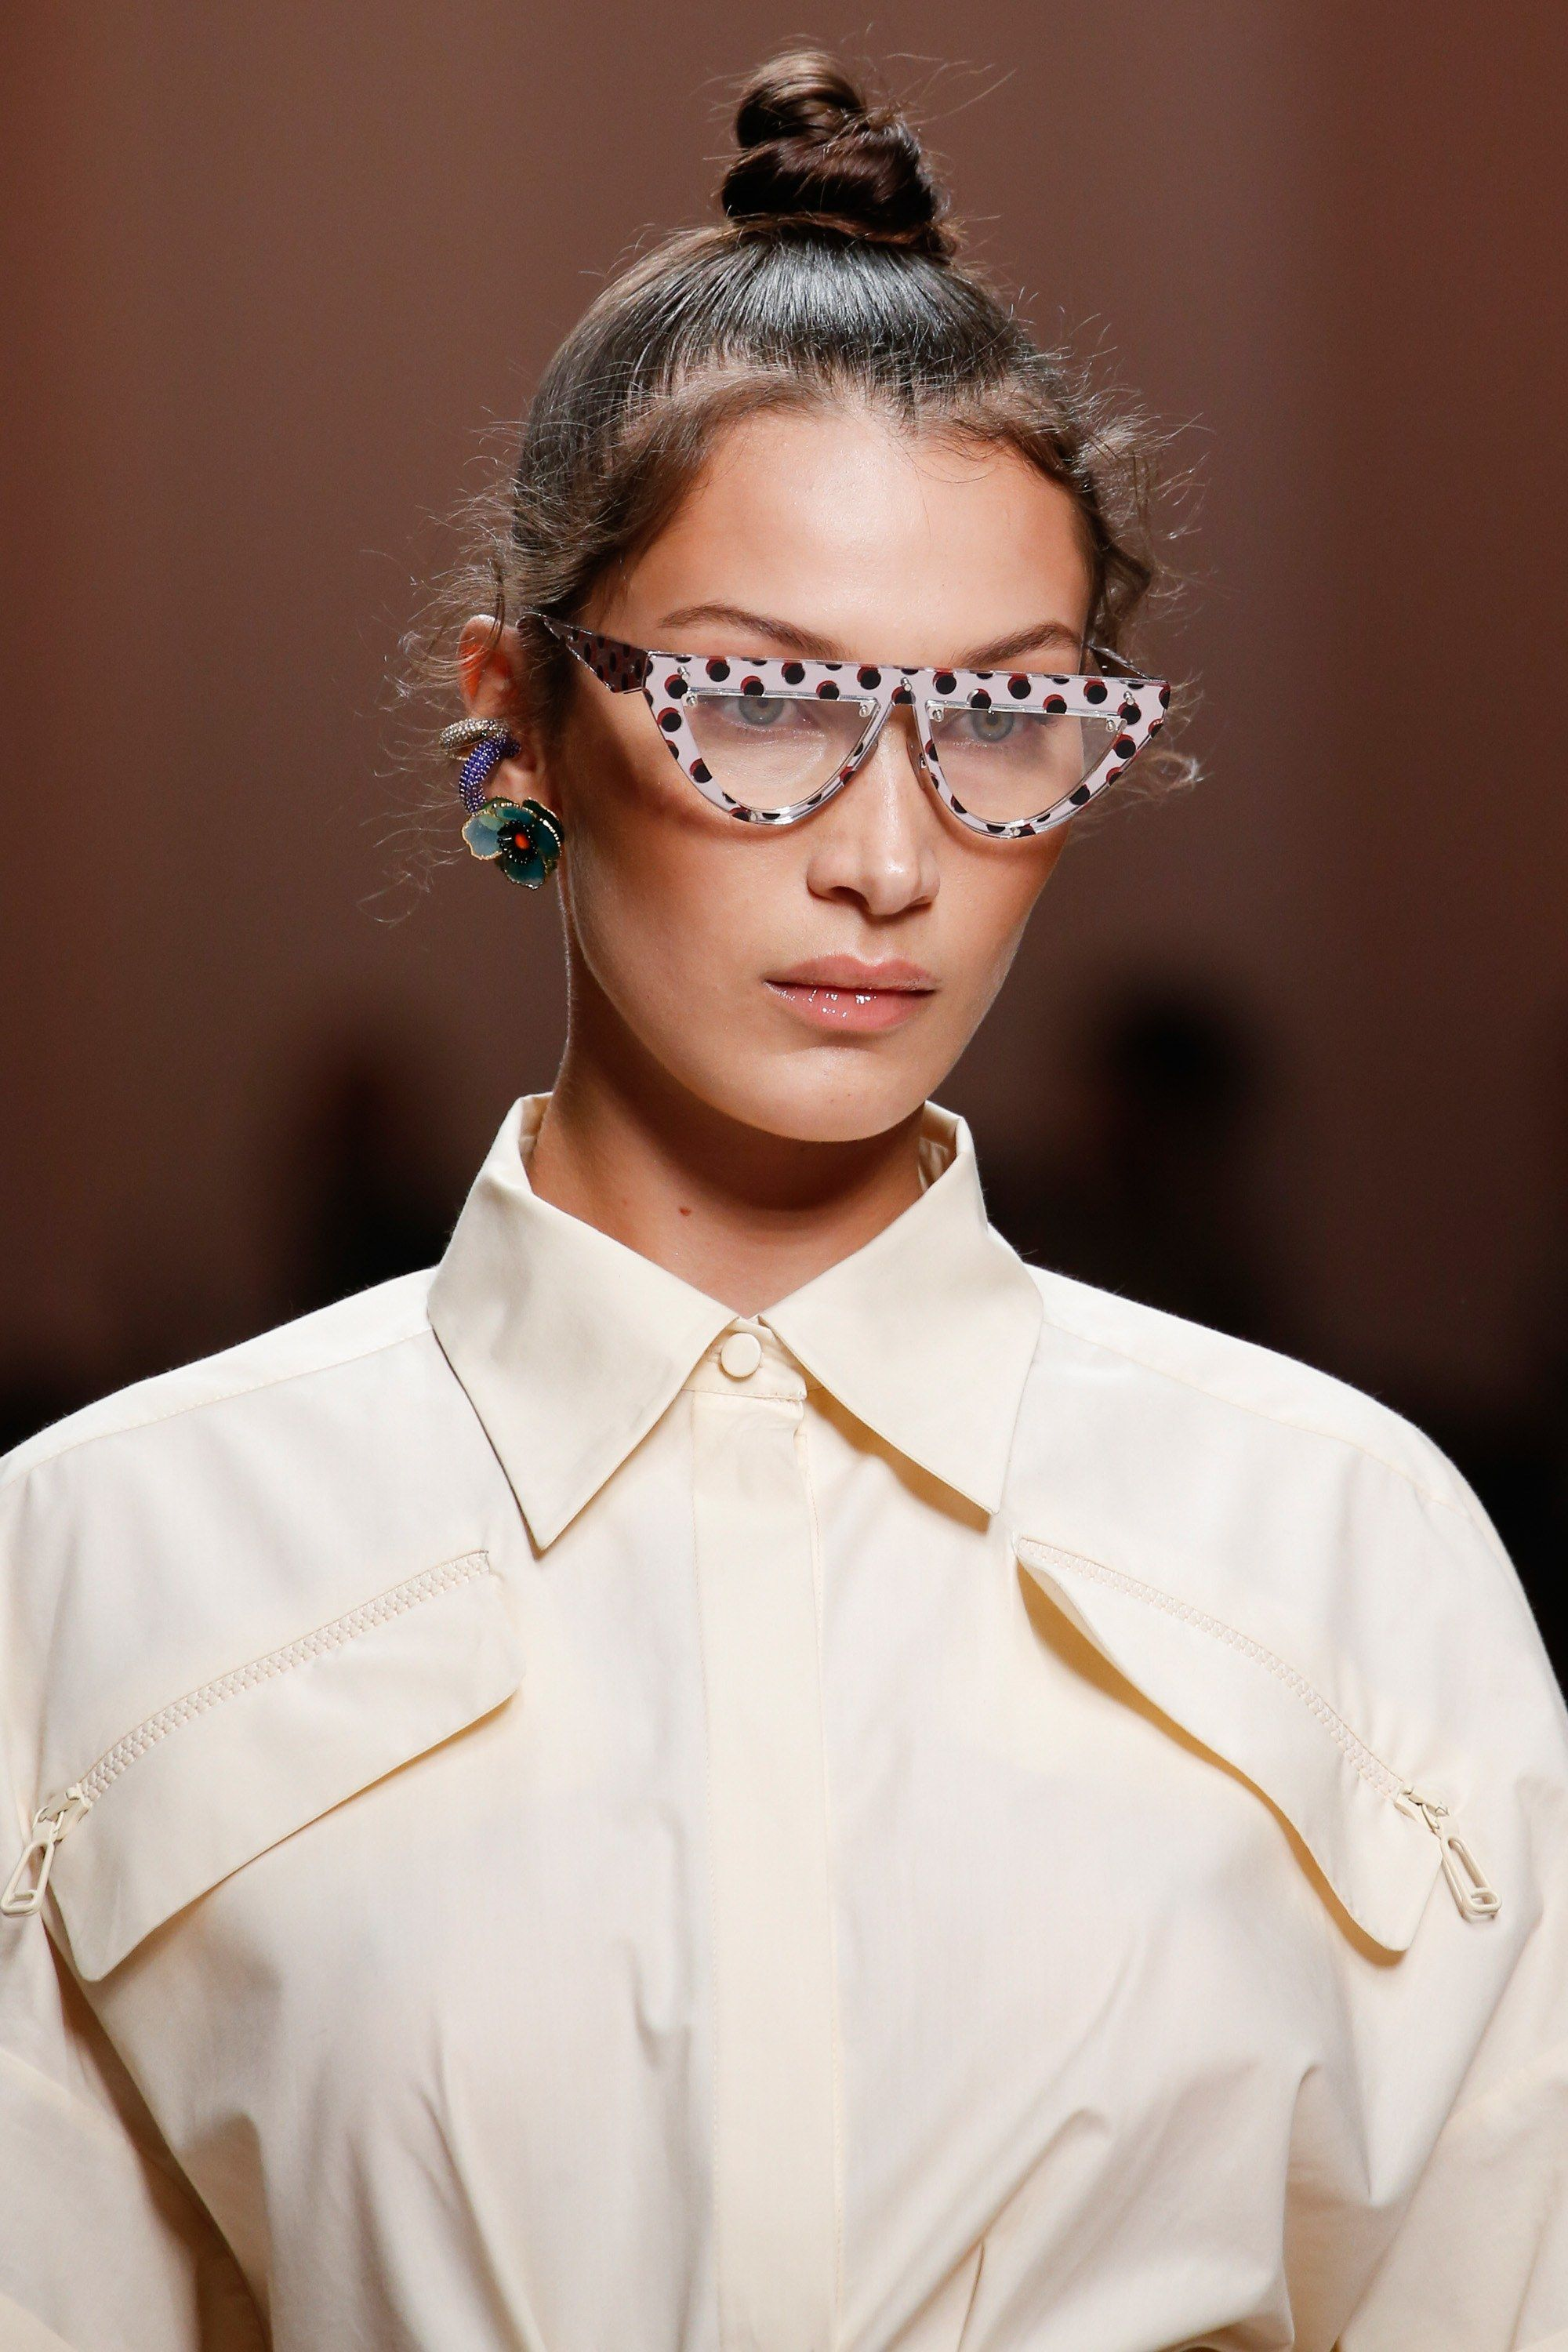 c4822daafdb0eb Fendi Spring Summer 2019 Ready To Wear-ready Woman Vogue Runway Details  sunglasses Trend - Read the Spring Summer 2019 Trends Fashion Week Coverage  on ...